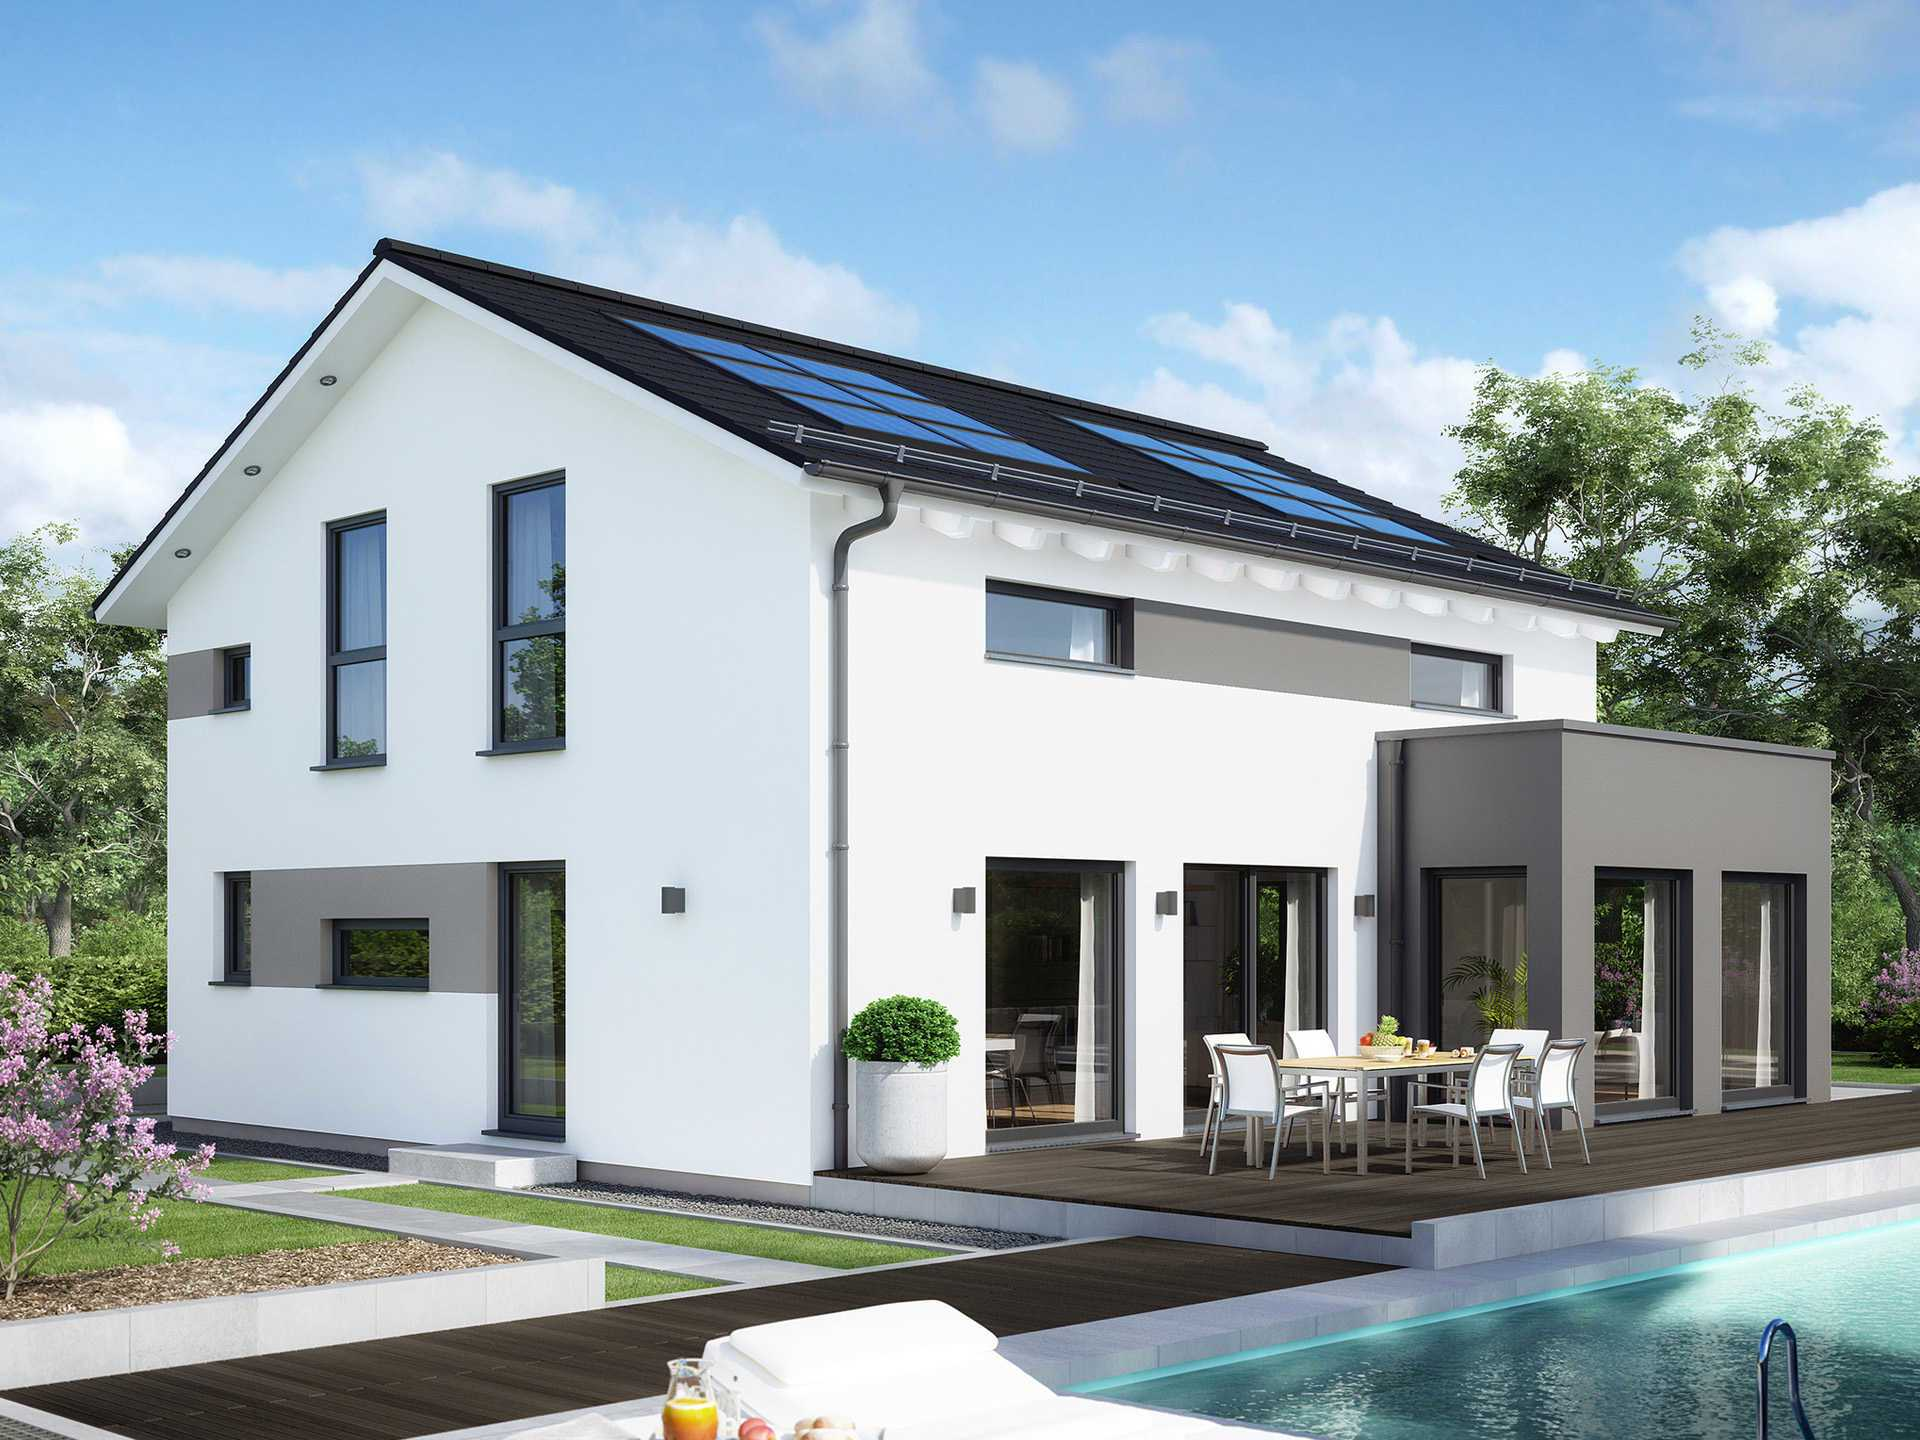 Musterhaus sunshine 165 ulm living haus for Moderne ha user mit satteldach